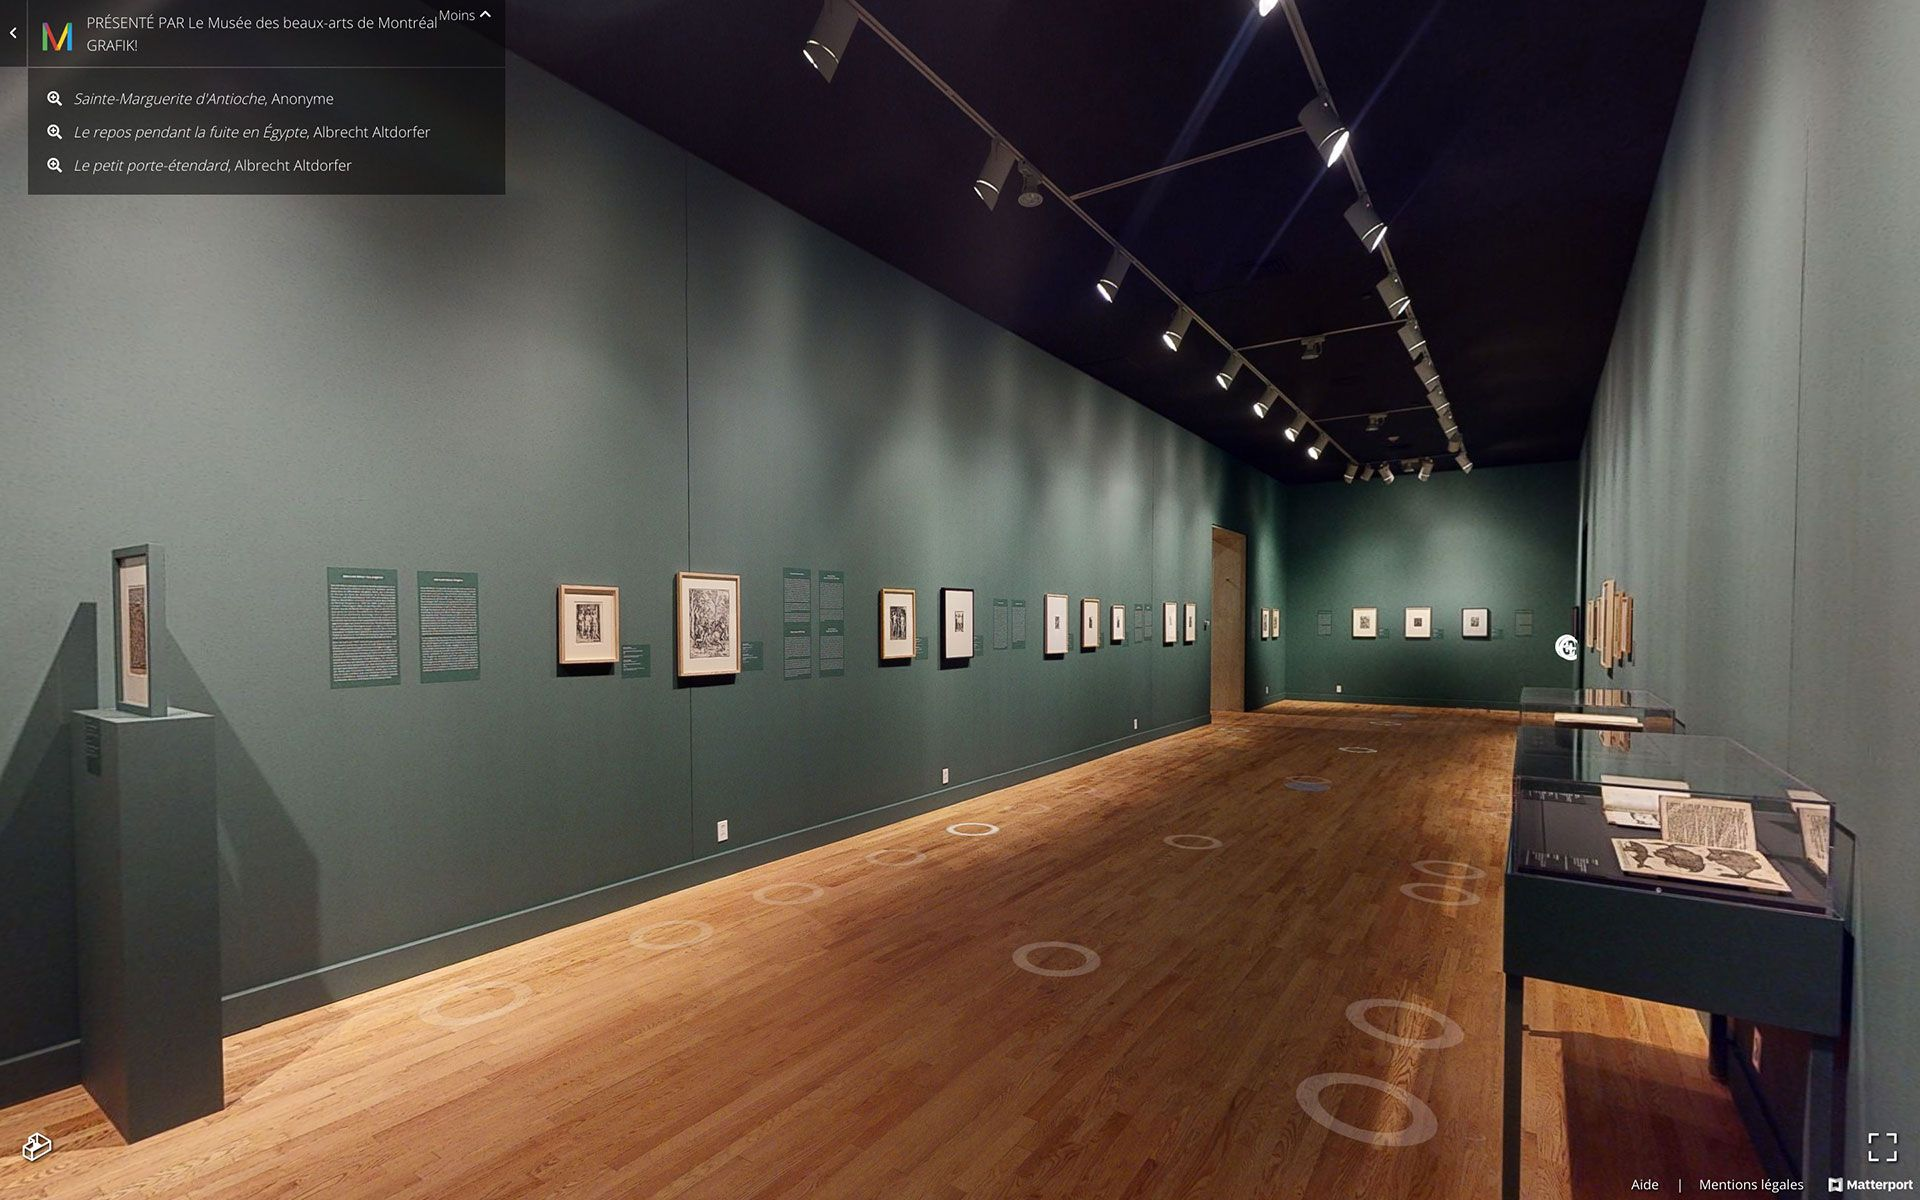 View of the virtual edition of the exhibition GRAFIK! Five Centuries of German and Austrian Graphics